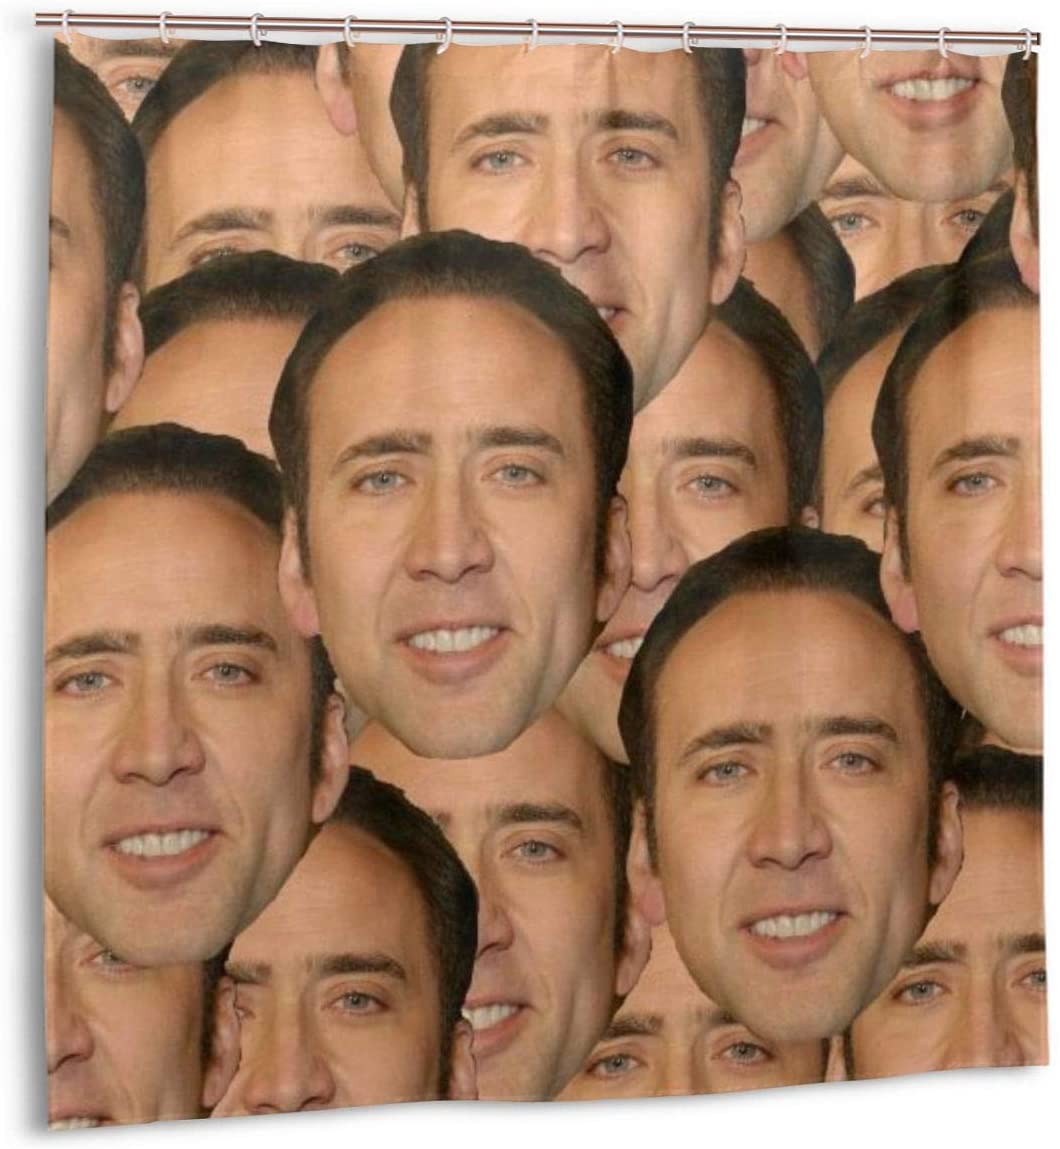 Junip Nicolas Cage Face Collage Shower Curtain Set for Bathroom Decor Waterproof Polyester Fabric Shower Curtain 72x72 in